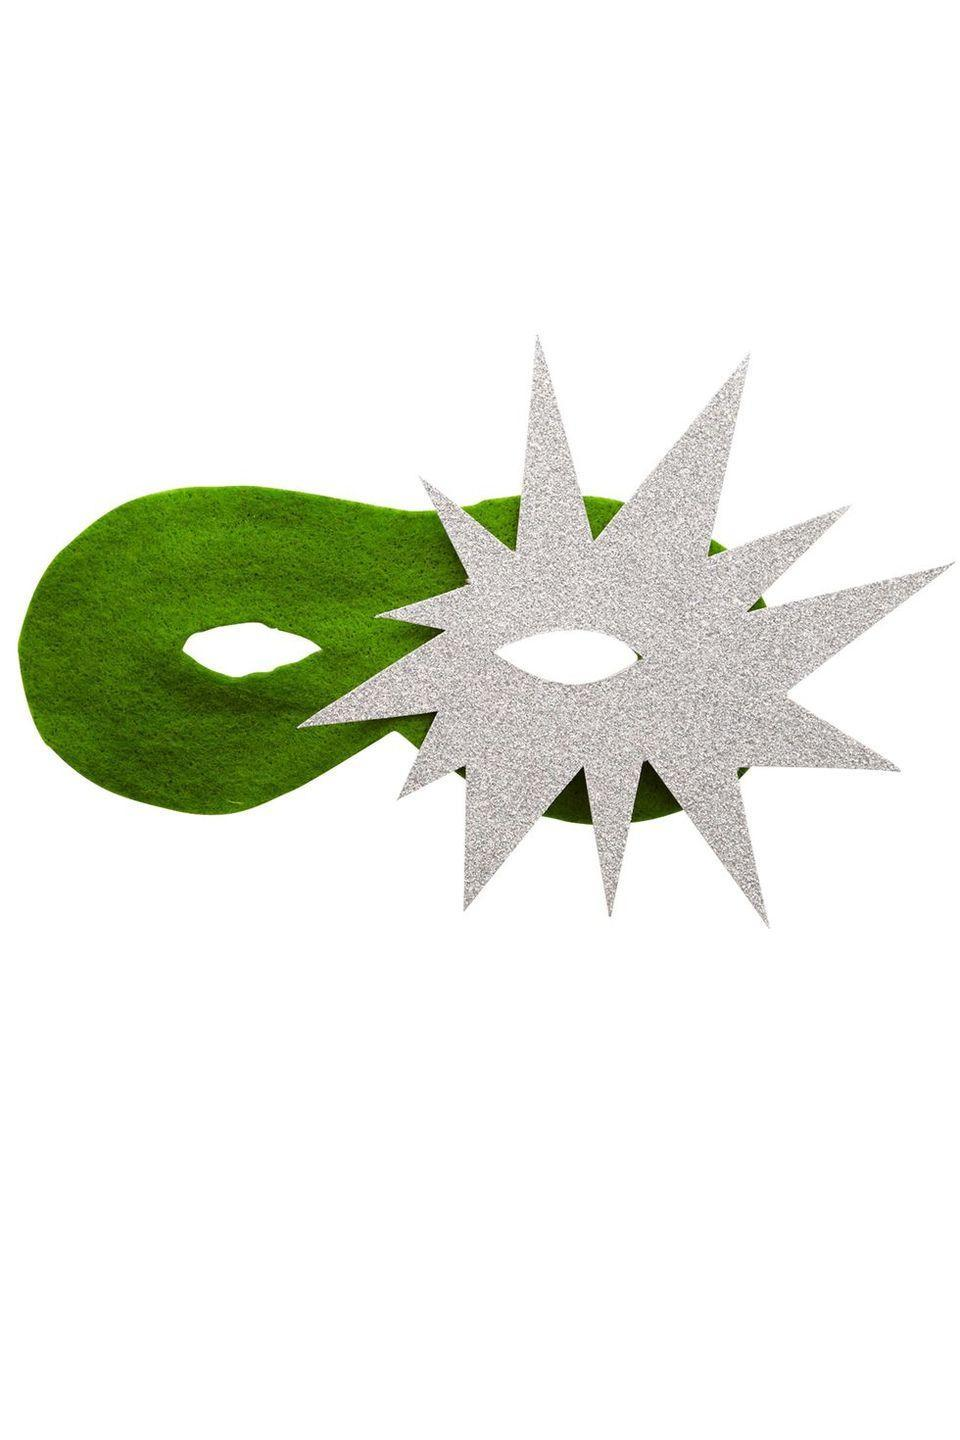 """<p>Put the super in superhero with this mask. Use hot glue to cover the mask with green felt. Then cut a starlike shape with an eyehole out of silver glitter paper and glue it to the mask. </p><p>__________________________________________________________</p><p>Want more crafts? You're in luck! <a href=""""https://subscribe.hearstmags.com/subscribe/womansday/253396?source=wdy_edit_article"""" rel=""""nofollow noopener"""" target=""""_blank"""" data-ylk=""""slk:Subscribe to Woman's Day"""" class=""""link rapid-noclick-resp"""">Subscribe to Woman's Day</a> today and get <strong>73% off your first 12 issues</strong>. And while you're at it, <a href=""""https://subscribe.hearstmags.com/circulation/shared/email/newsletters/signup/wdy-su01.html"""" rel=""""nofollow noopener"""" target=""""_blank"""" data-ylk=""""slk:sign up for our FREE newsletter"""" class=""""link rapid-noclick-resp"""">sign up for our FREE newsletter</a> for even more of the Woman's Day content you want.</p>"""